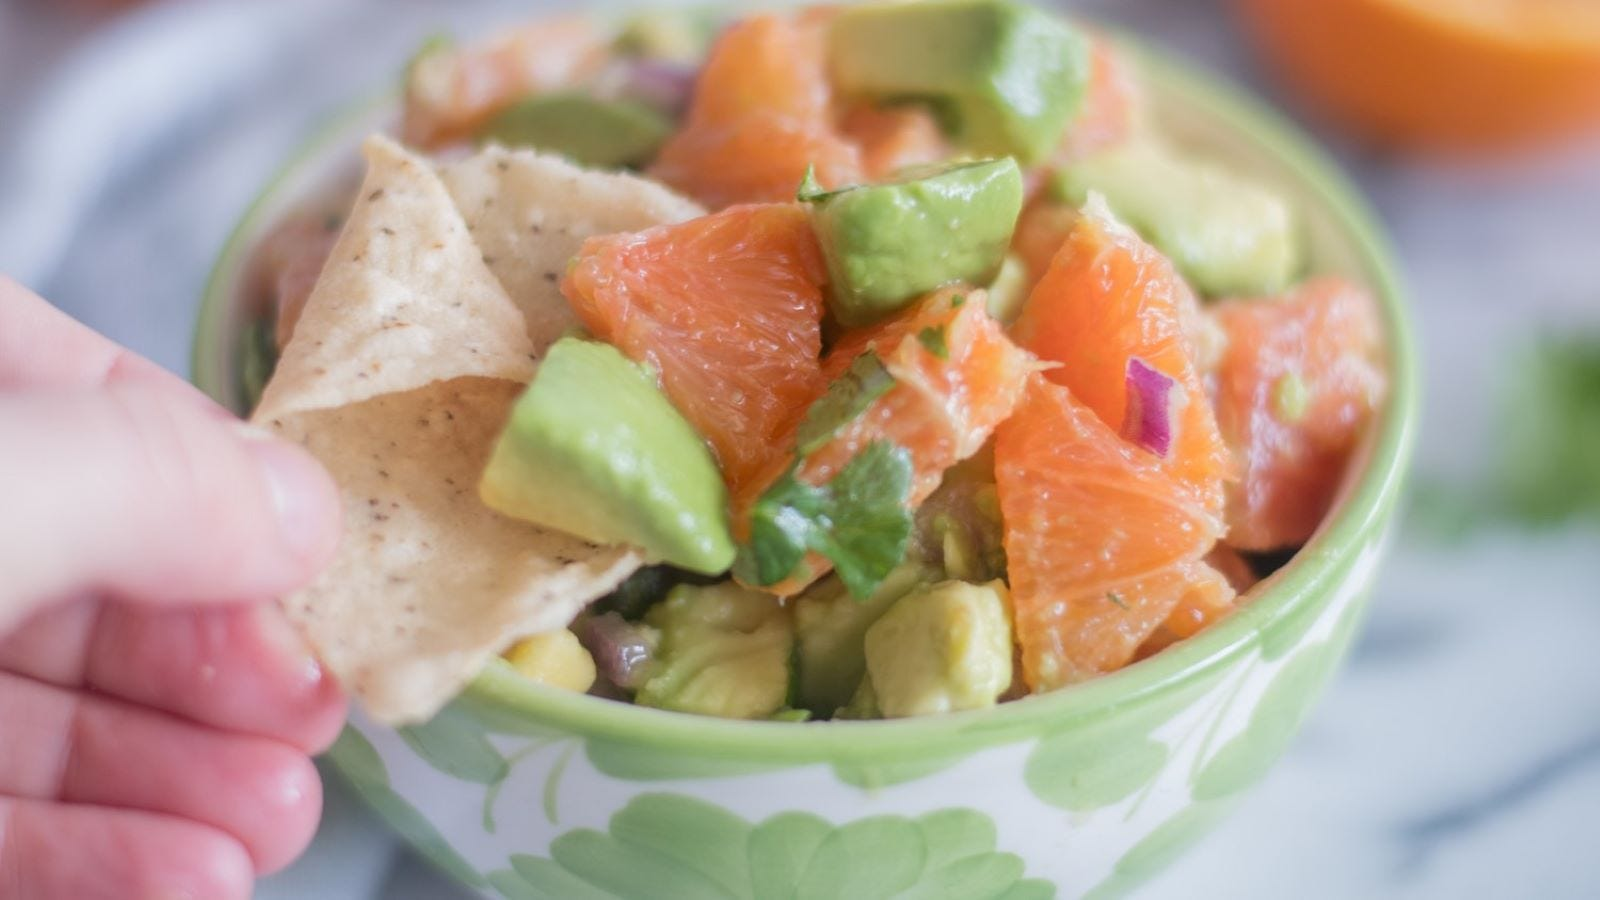 Someone dipping a chip in a bowl of orange and avocado salsa.